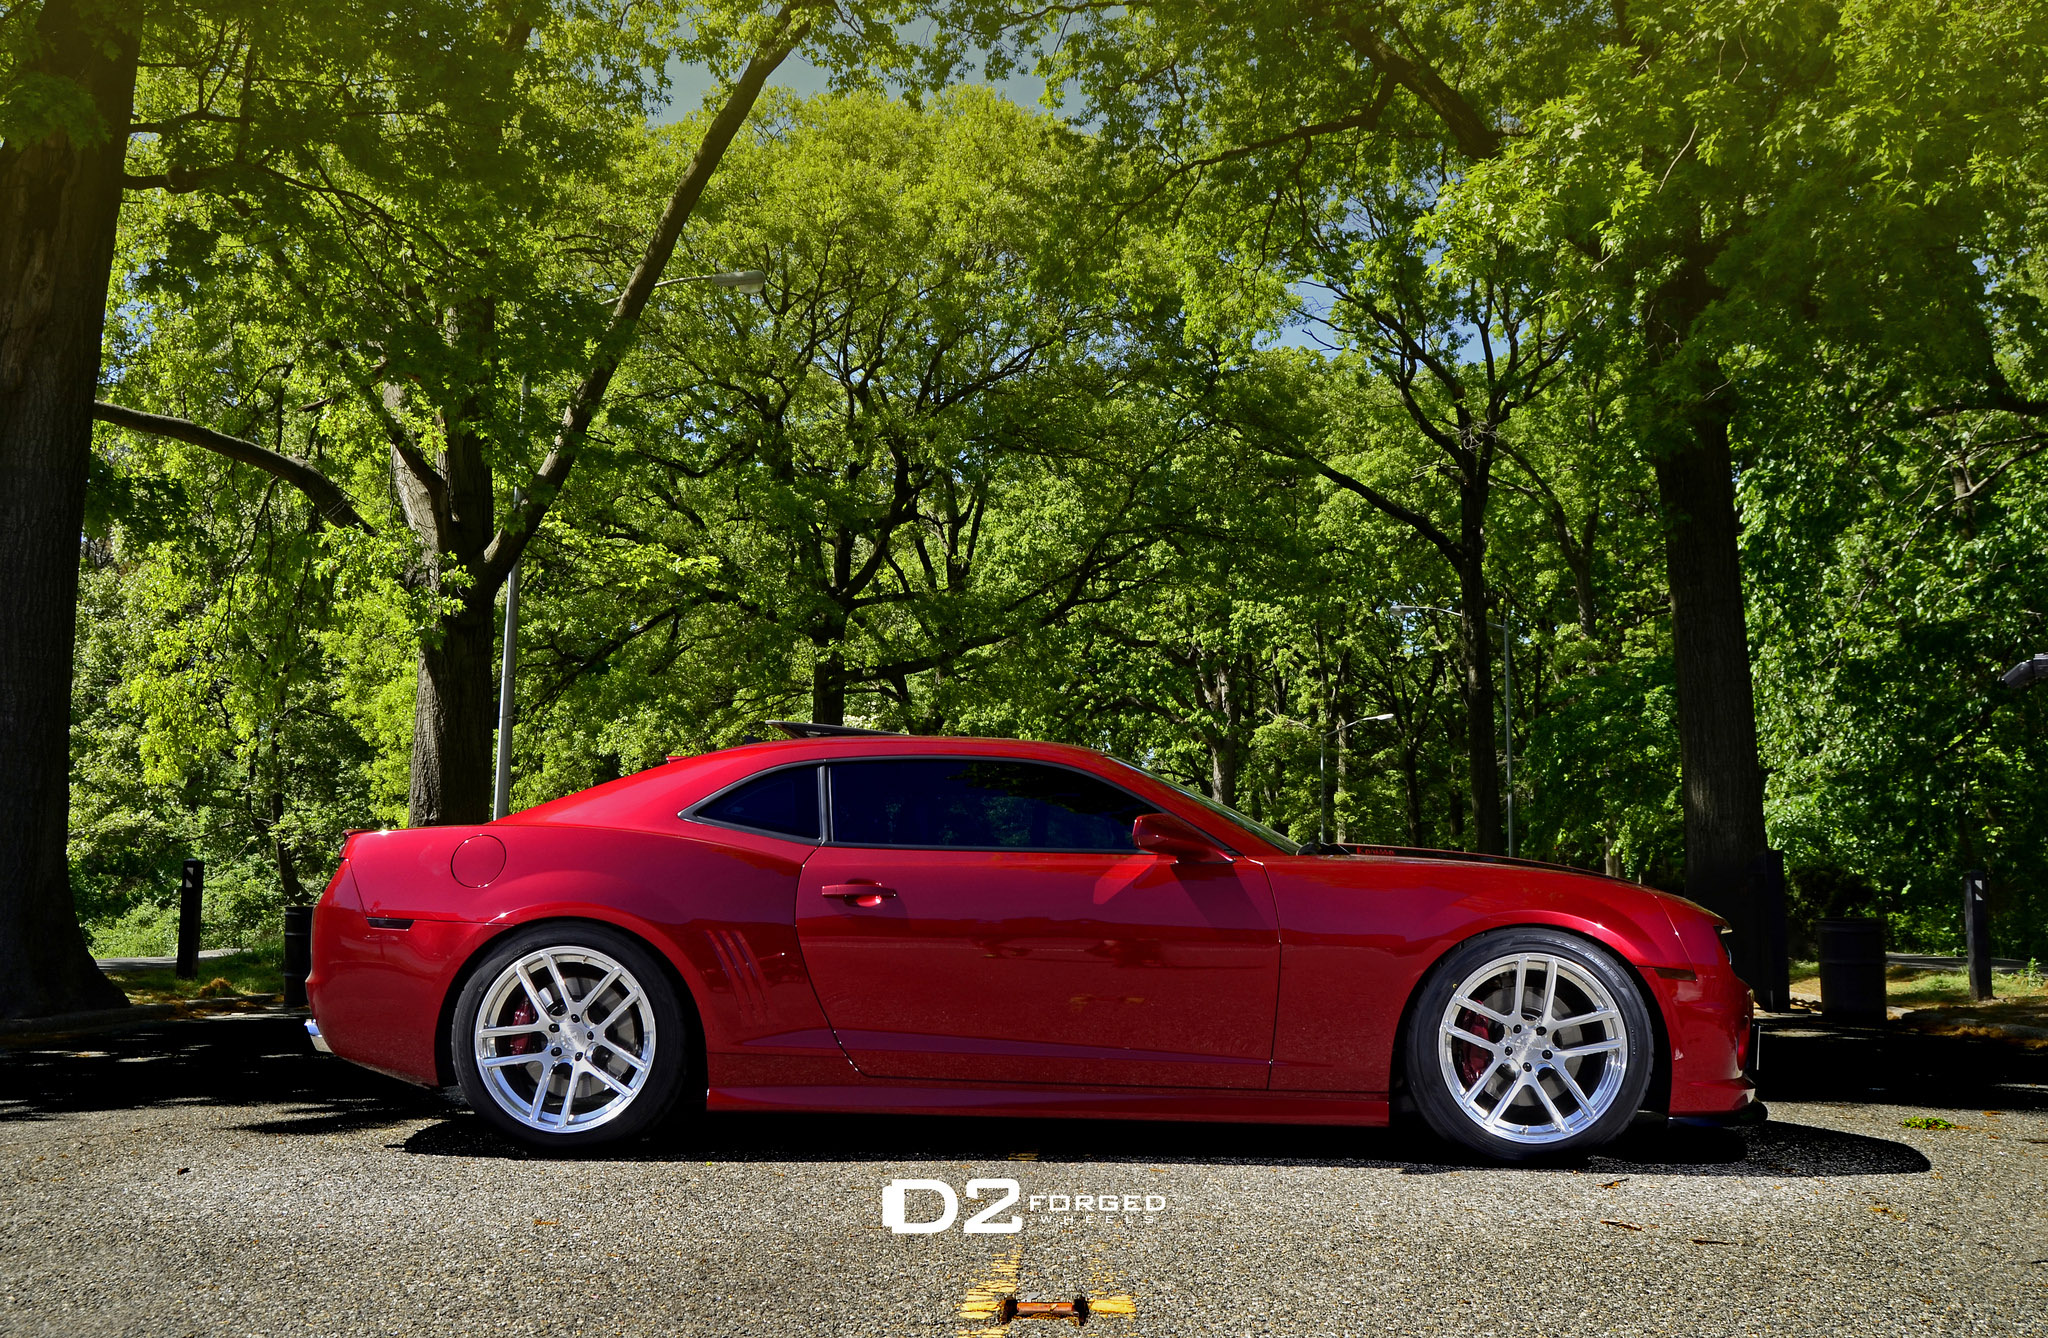 D2forged Chevrolet Camaro Ss Mb1 With Enhanced Looks